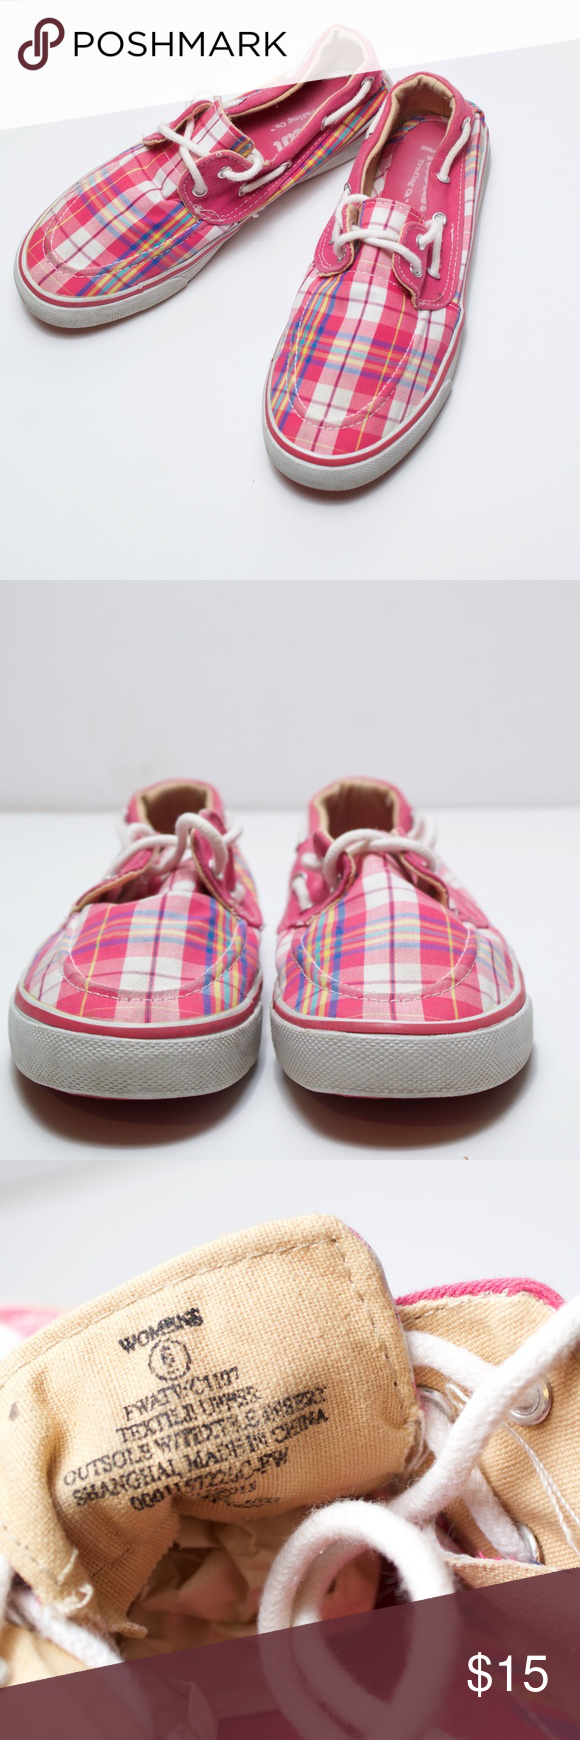 3e46ad14bd01 Austin Trading Company - Pink Plaid Boat Shoes Austin Trading Company -  Pink Plaid Boat Shoes